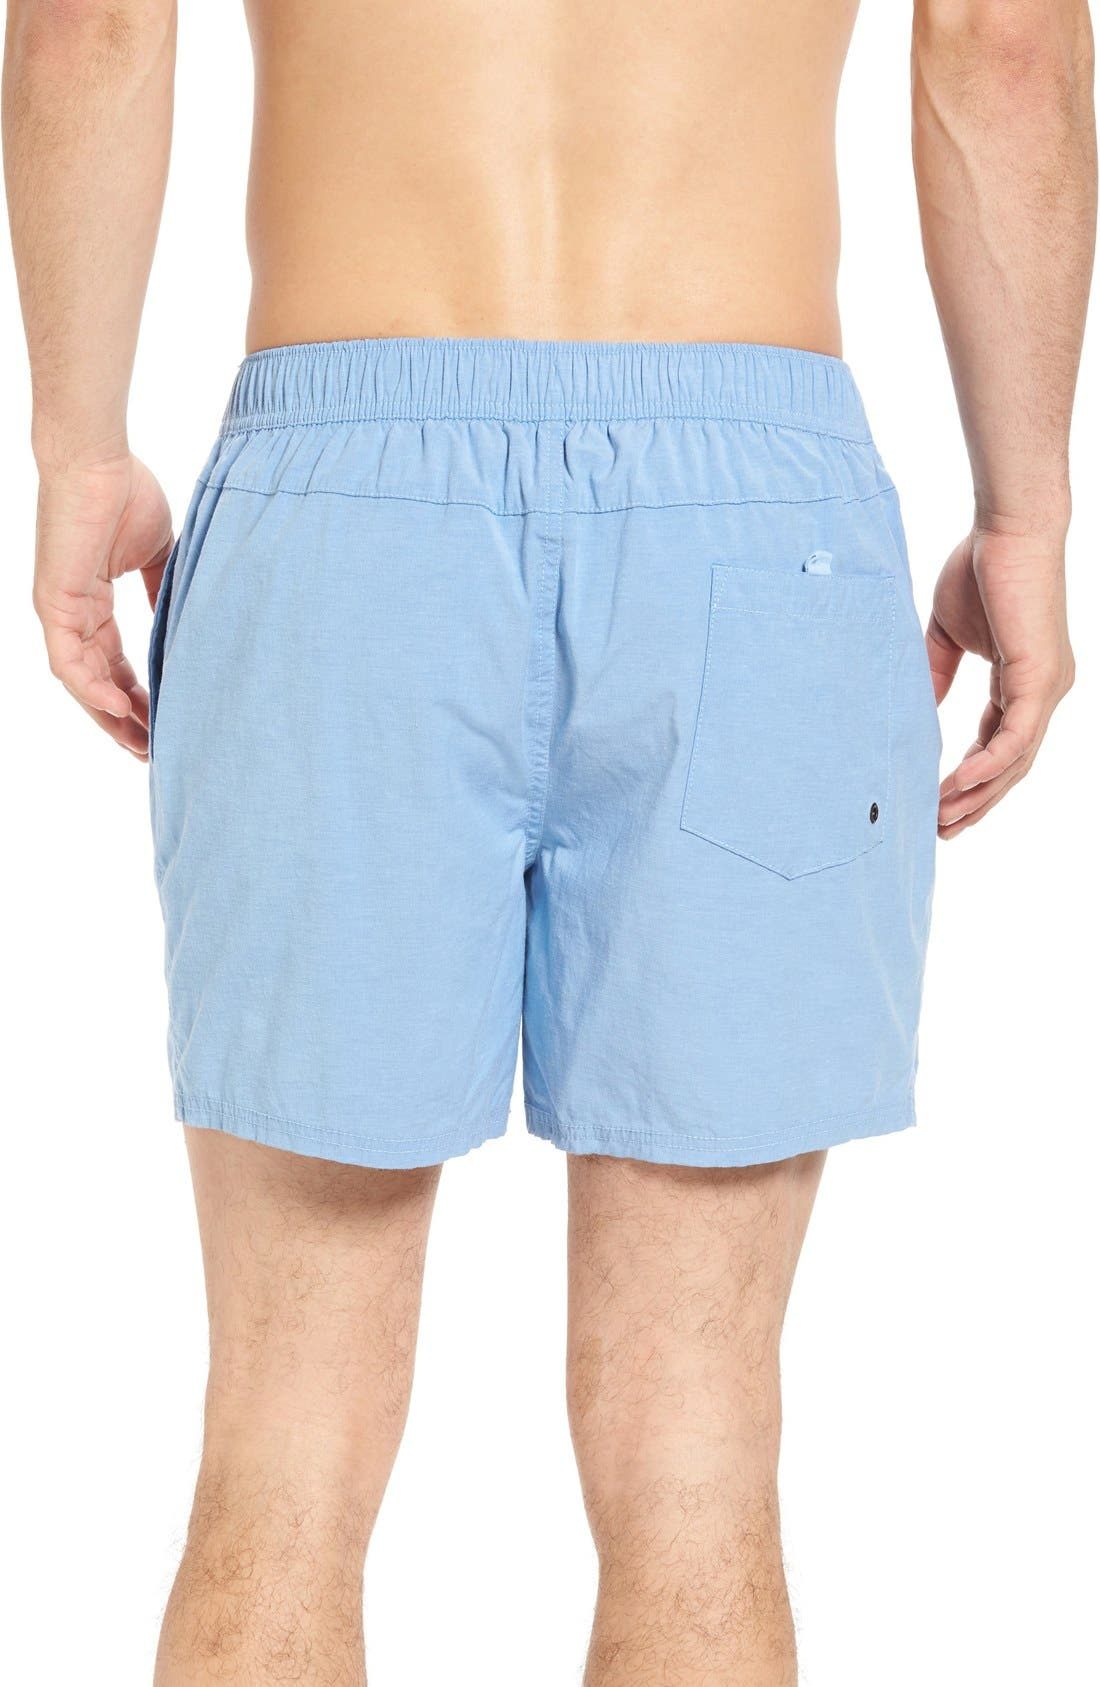 Waikiki Board Shorts,                             Alternate thumbnail 23, color,